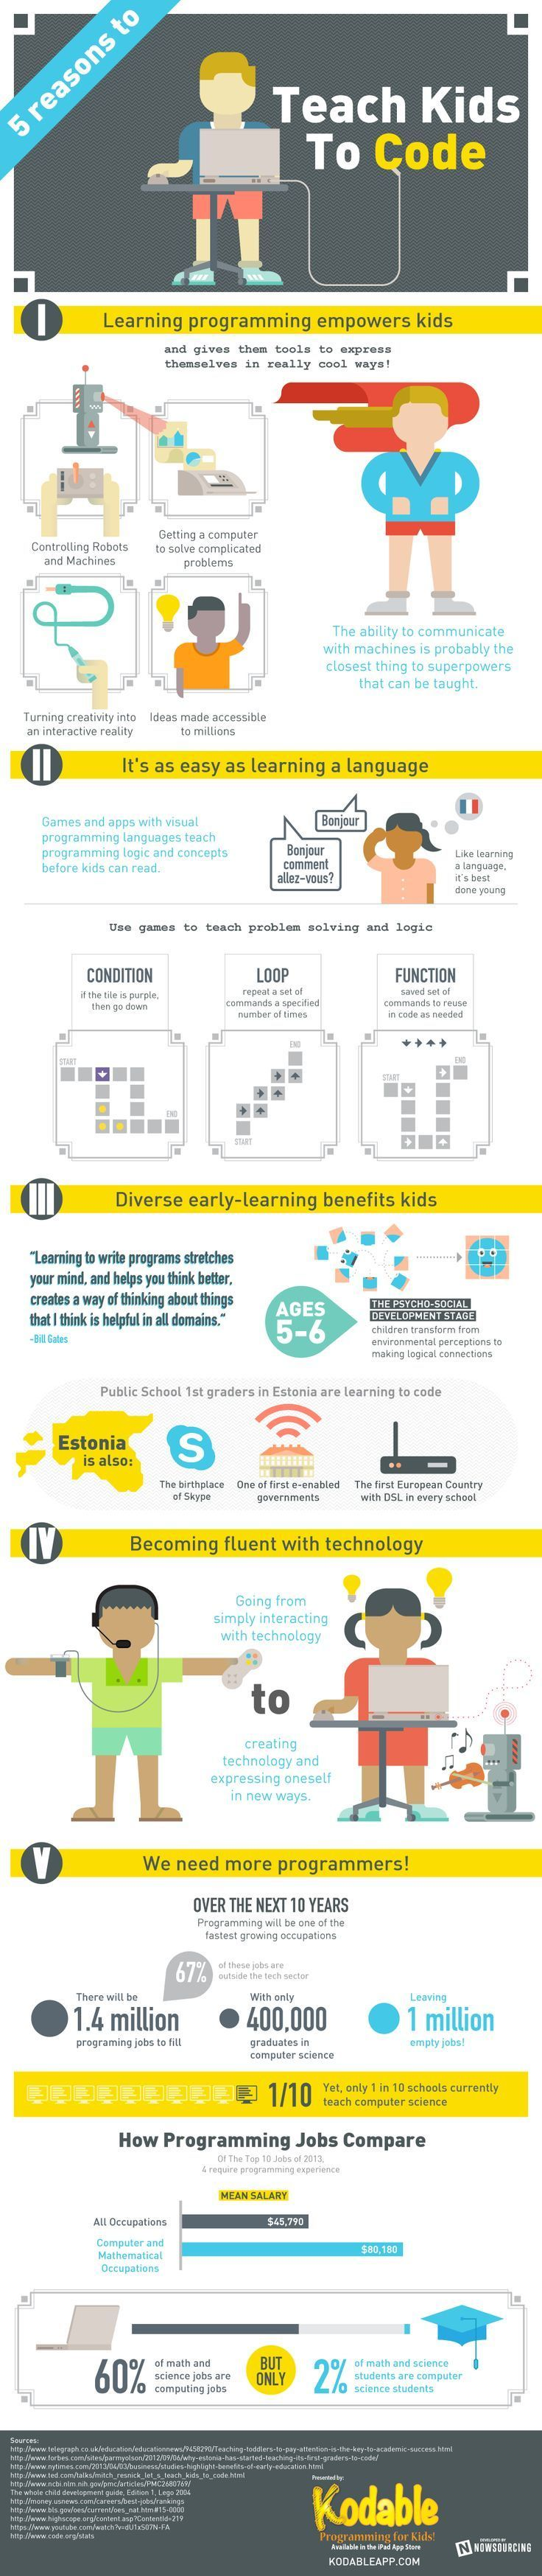 Happy Digital Learning Day! Learn why computer science should make a comeback in schools. #EdTech #DigitalLearning #Infographic #DLDay #Teachers #Education #EdTech #Coding